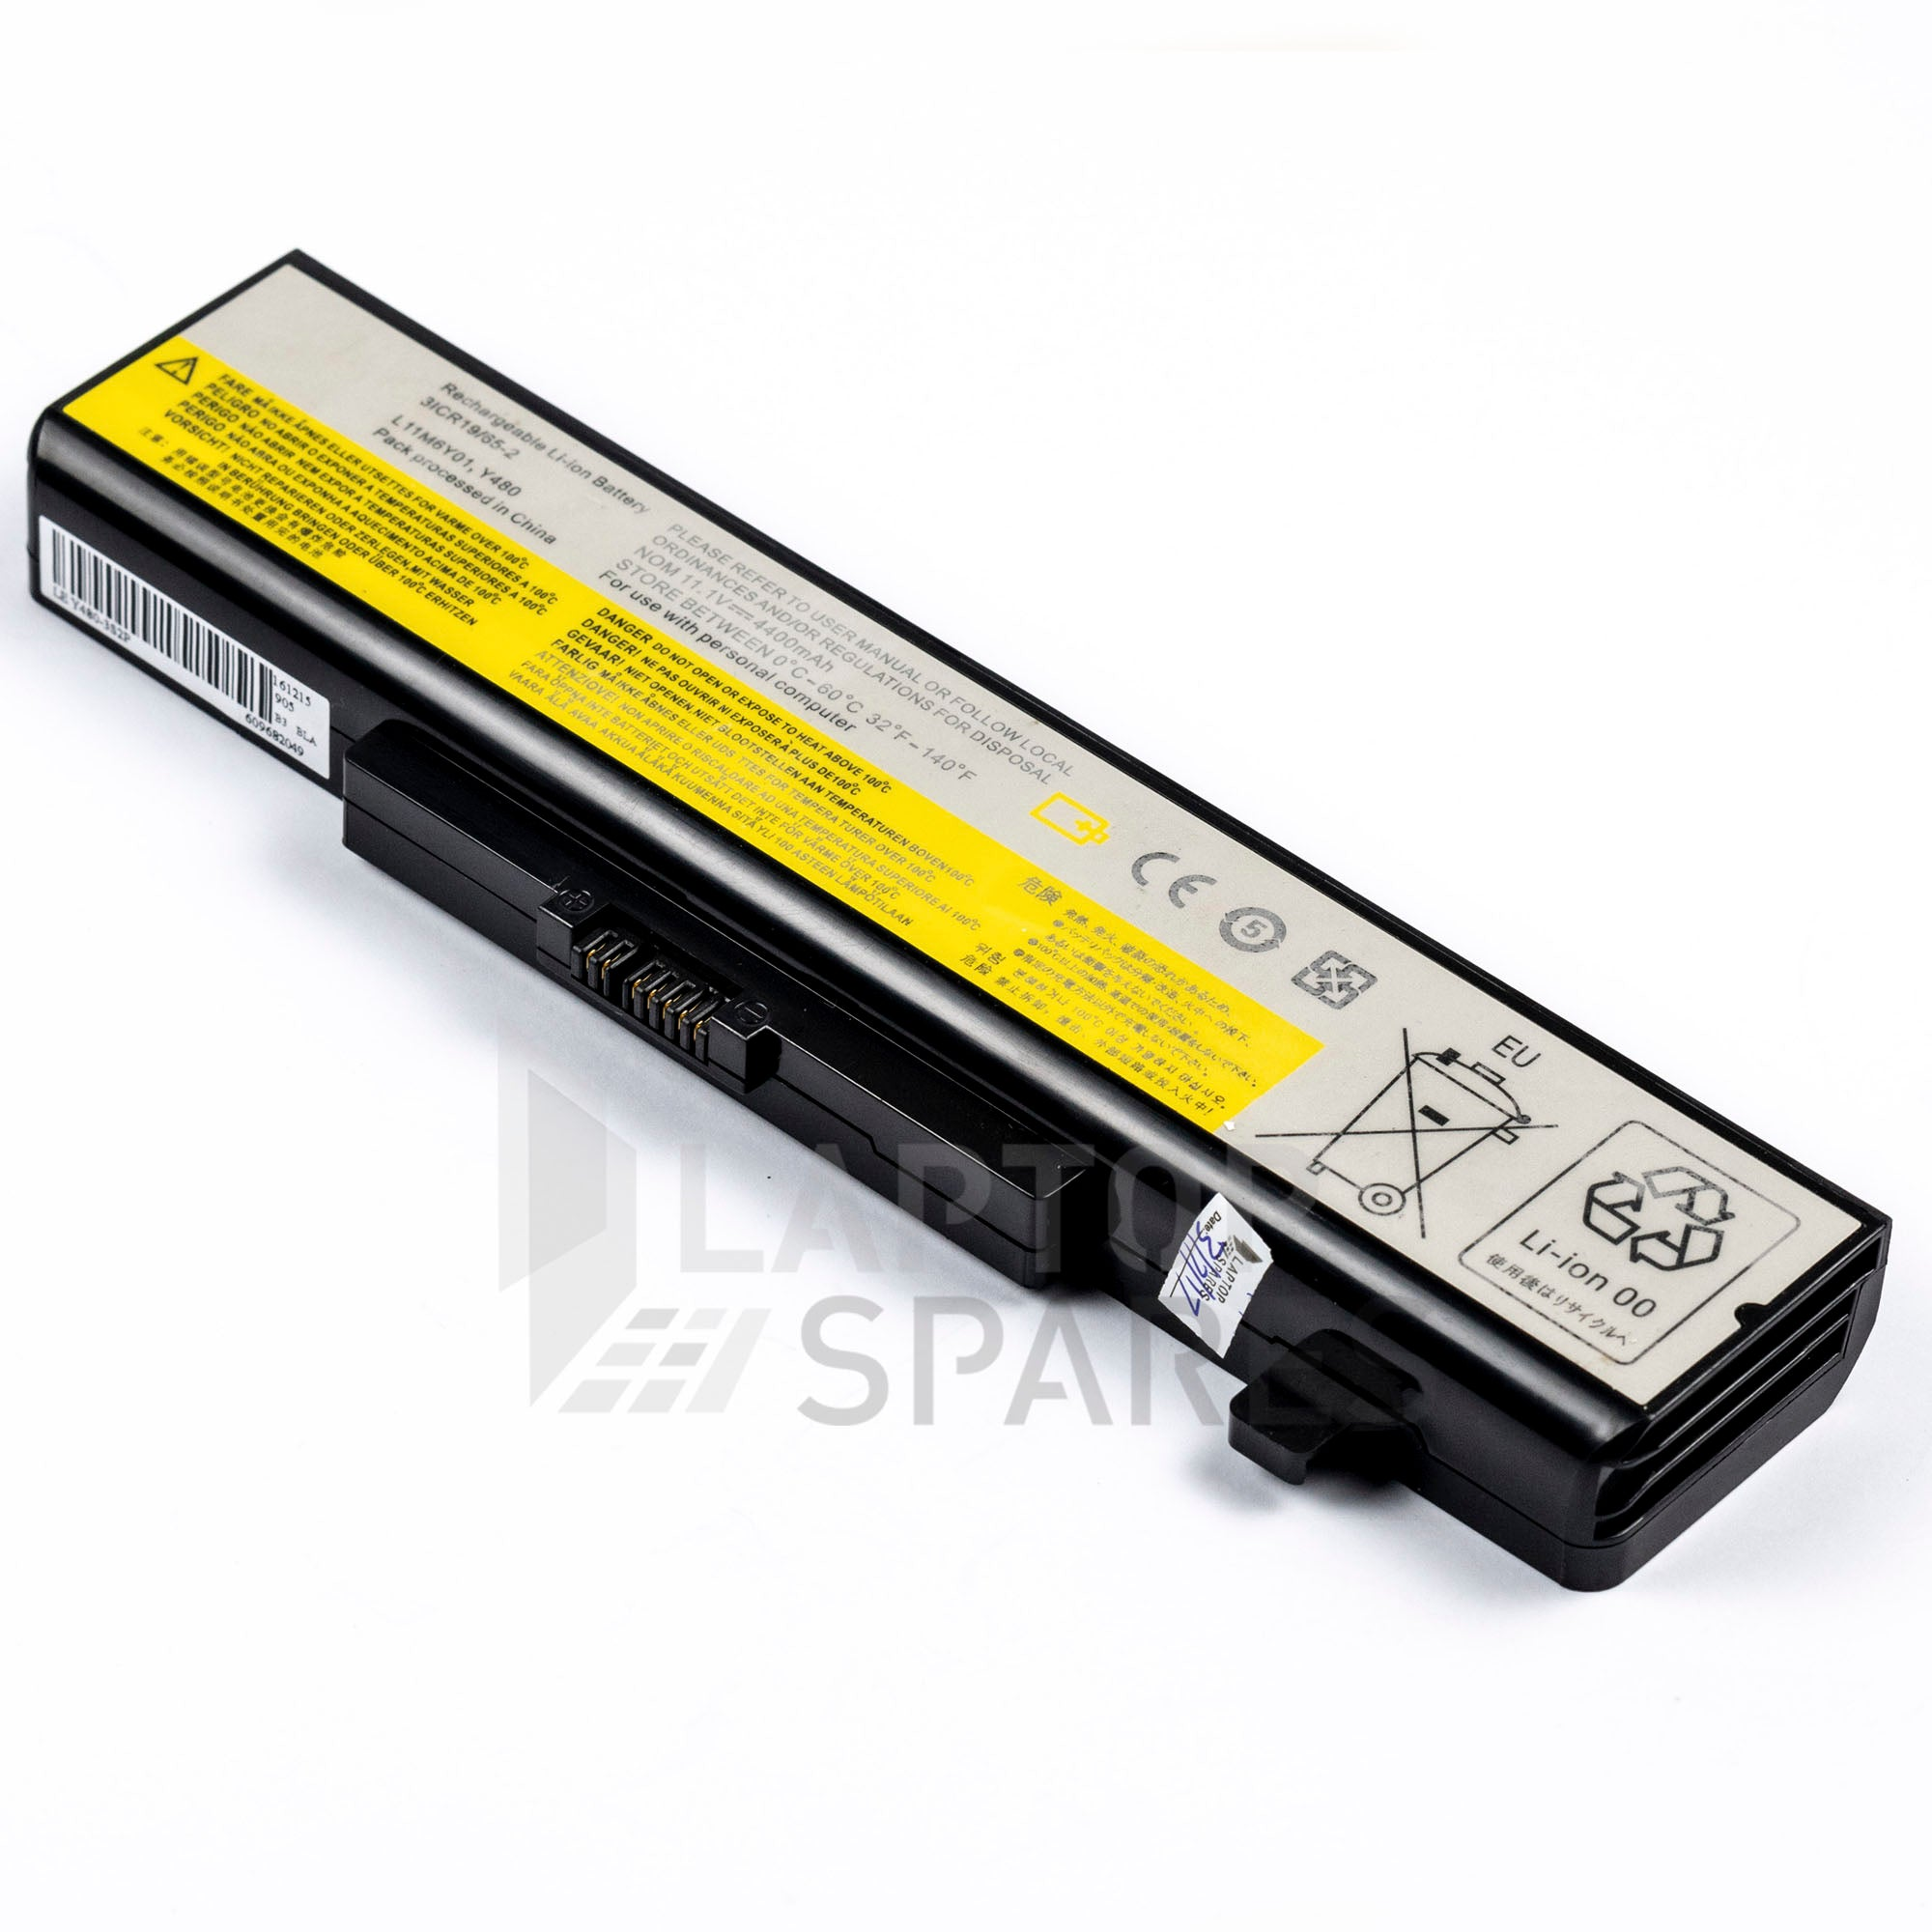 Lenovo IdeaPad Y480 4400mAh 6 Cell Battery